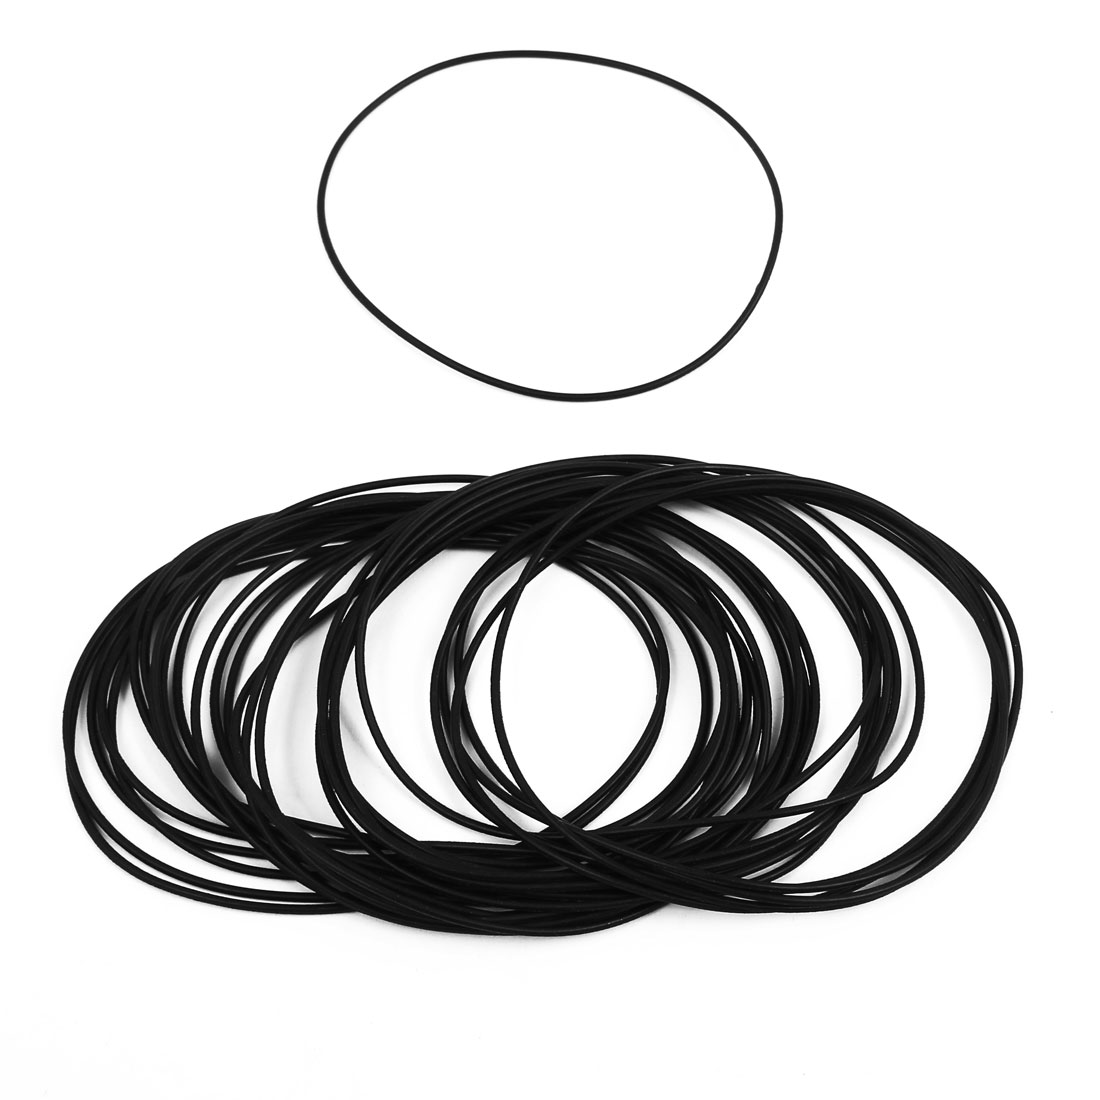 30 Pcs 85mm x 1.5mm Rubber O-rings NBR Heat Resistant Sealing Ring Grommets